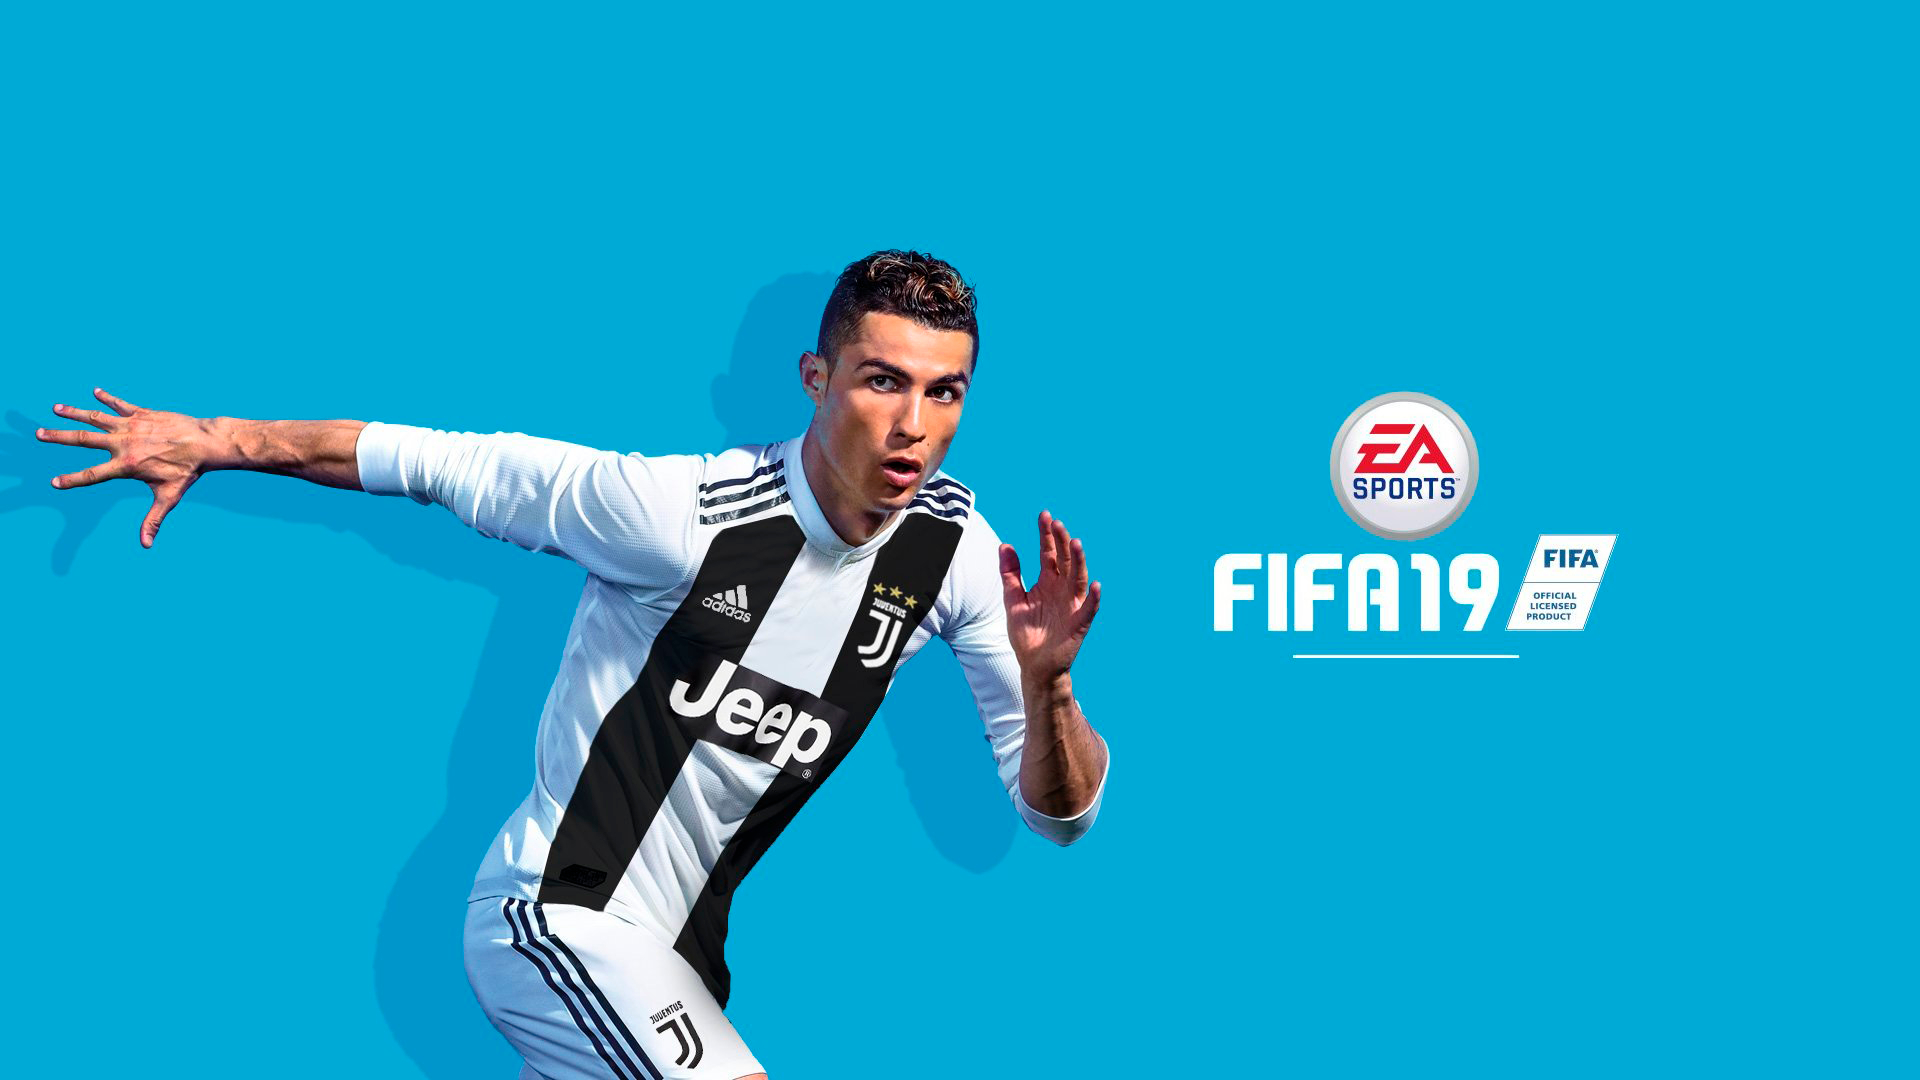 FIFA 19 Update Version 1.09 Patch Notes For PC, PS4, and